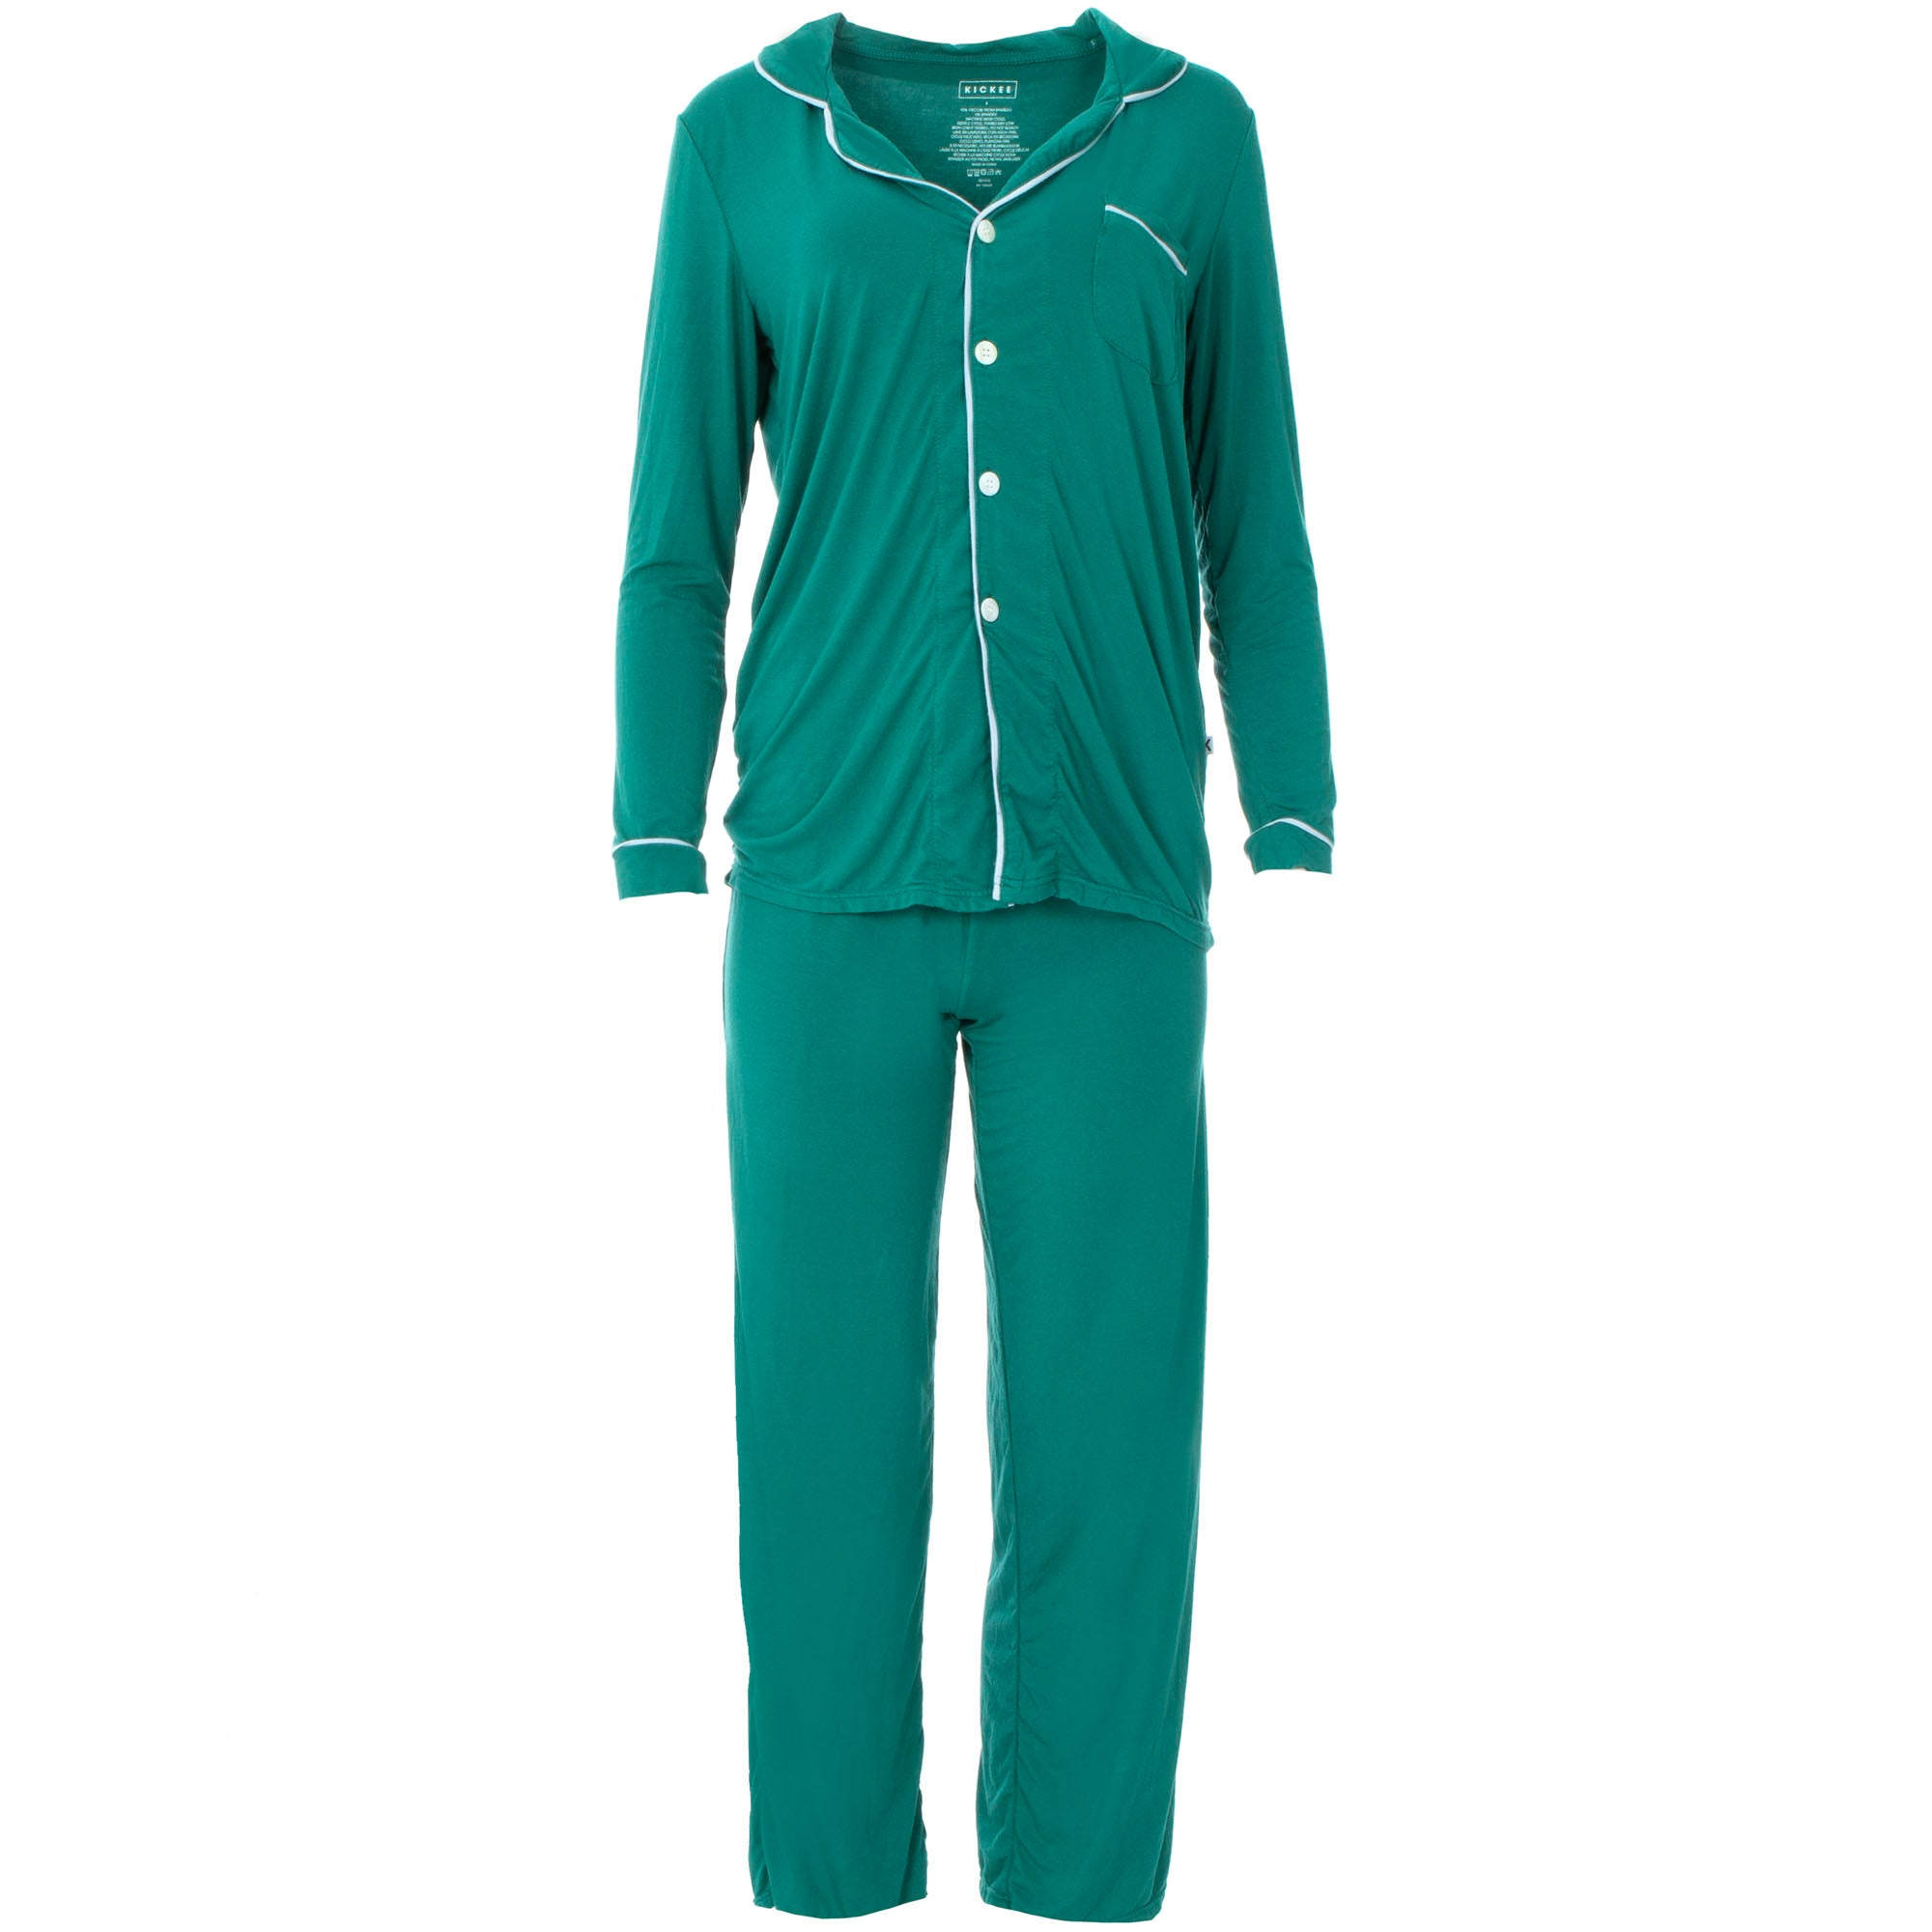 KicKee Pants Womens Collared Pajama Set - Ivy with Frost